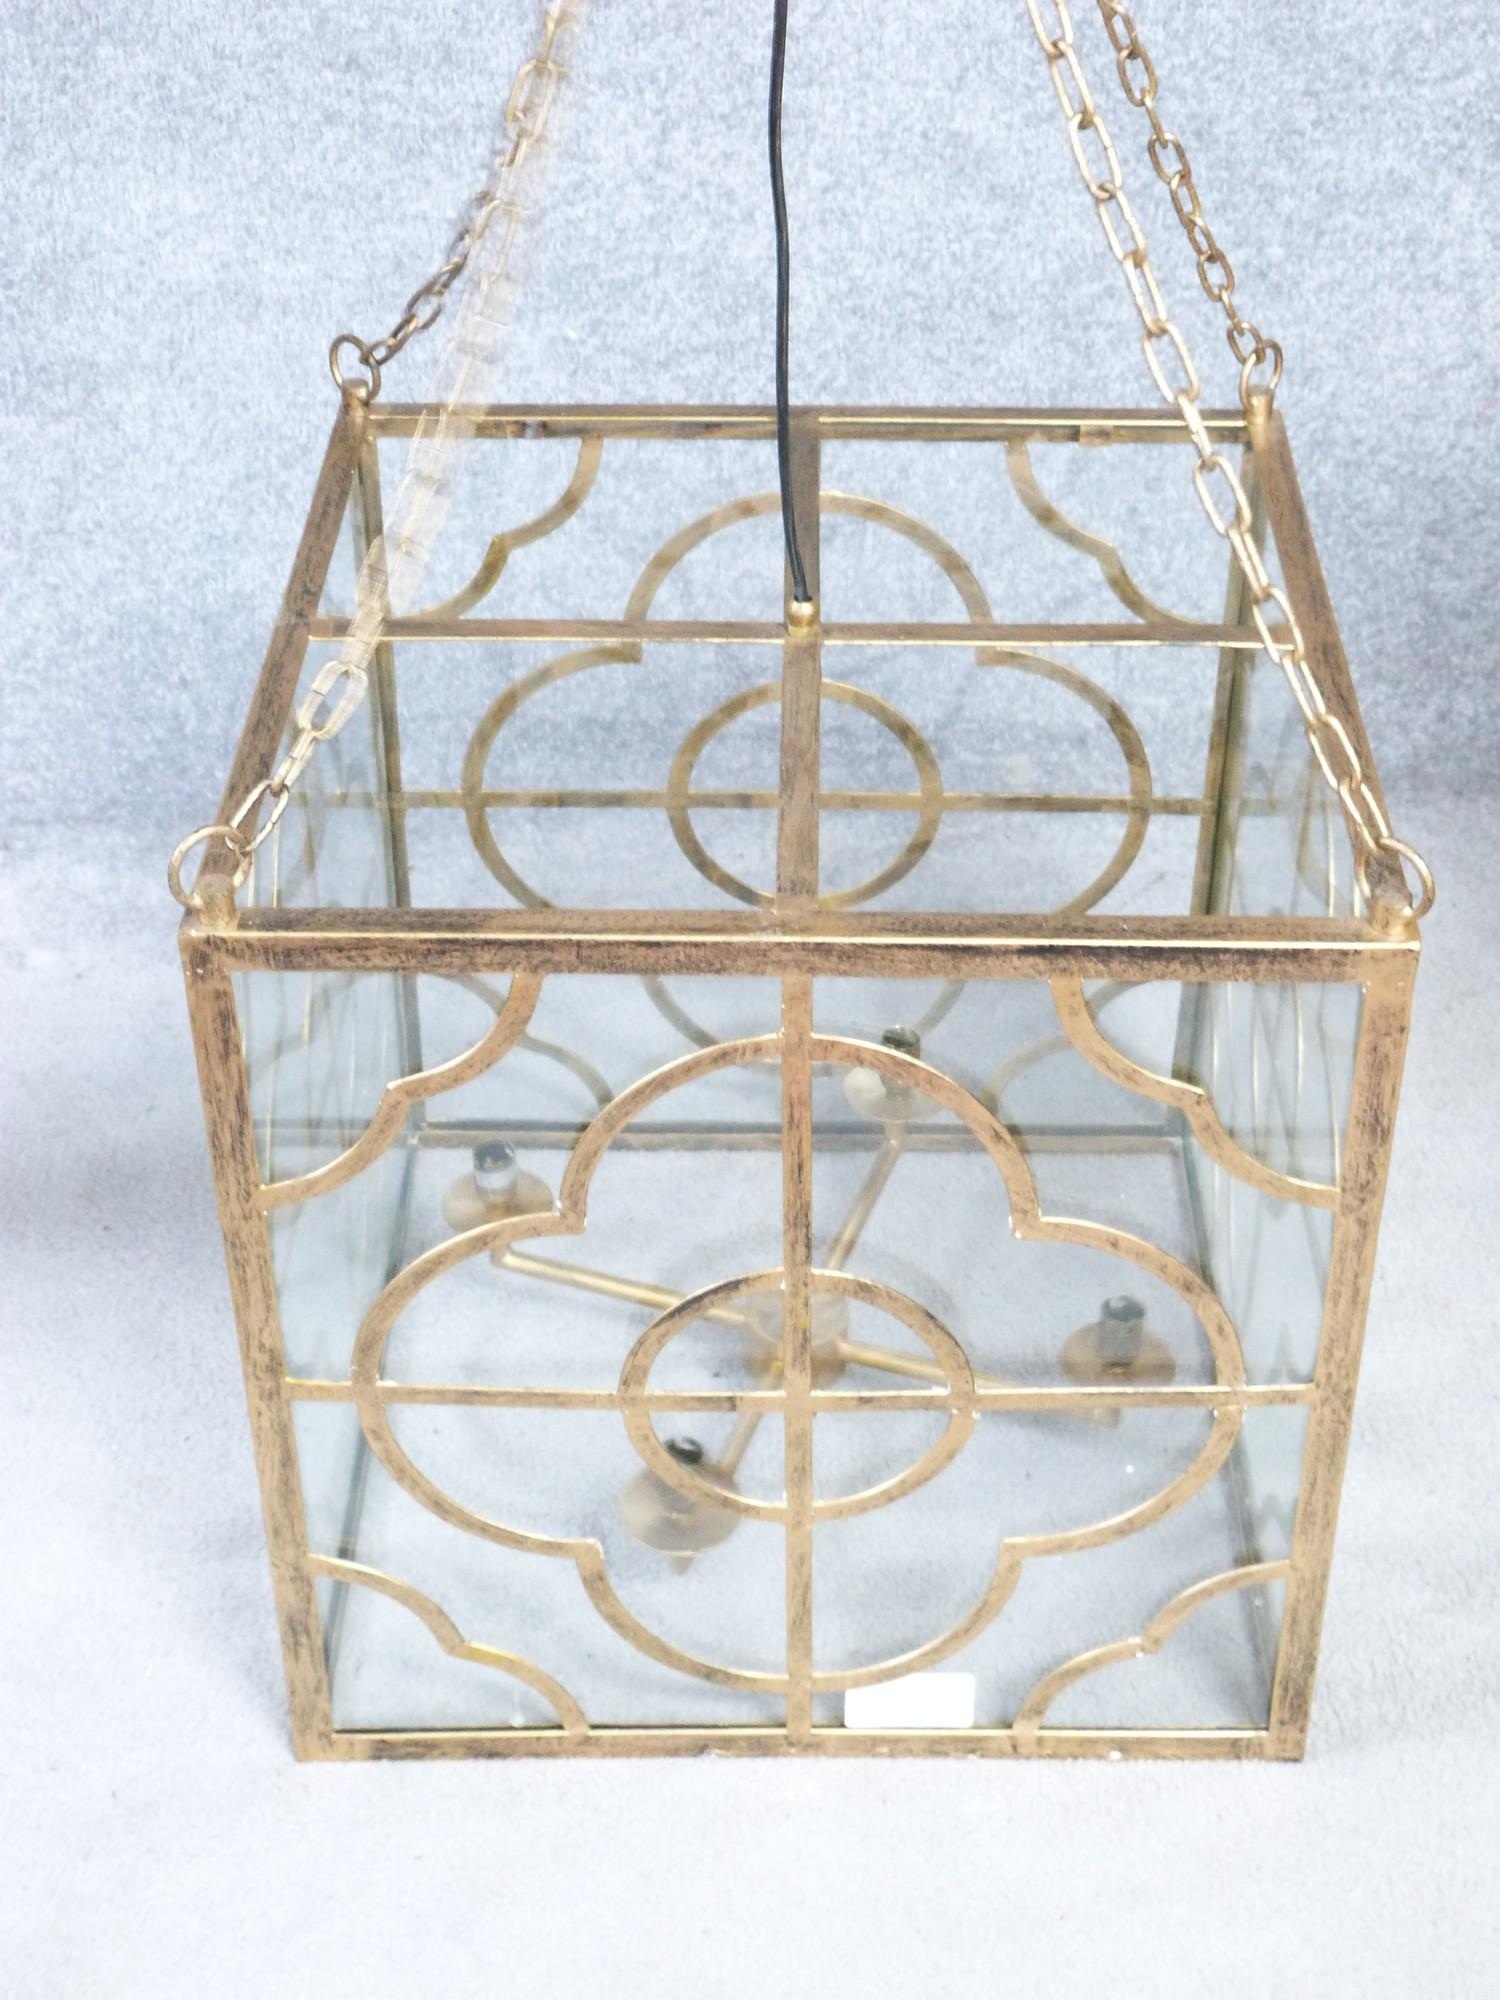 A Julian Chichester gold 'Anna' design pierced metal hanging ceiling lantern with stylised floral